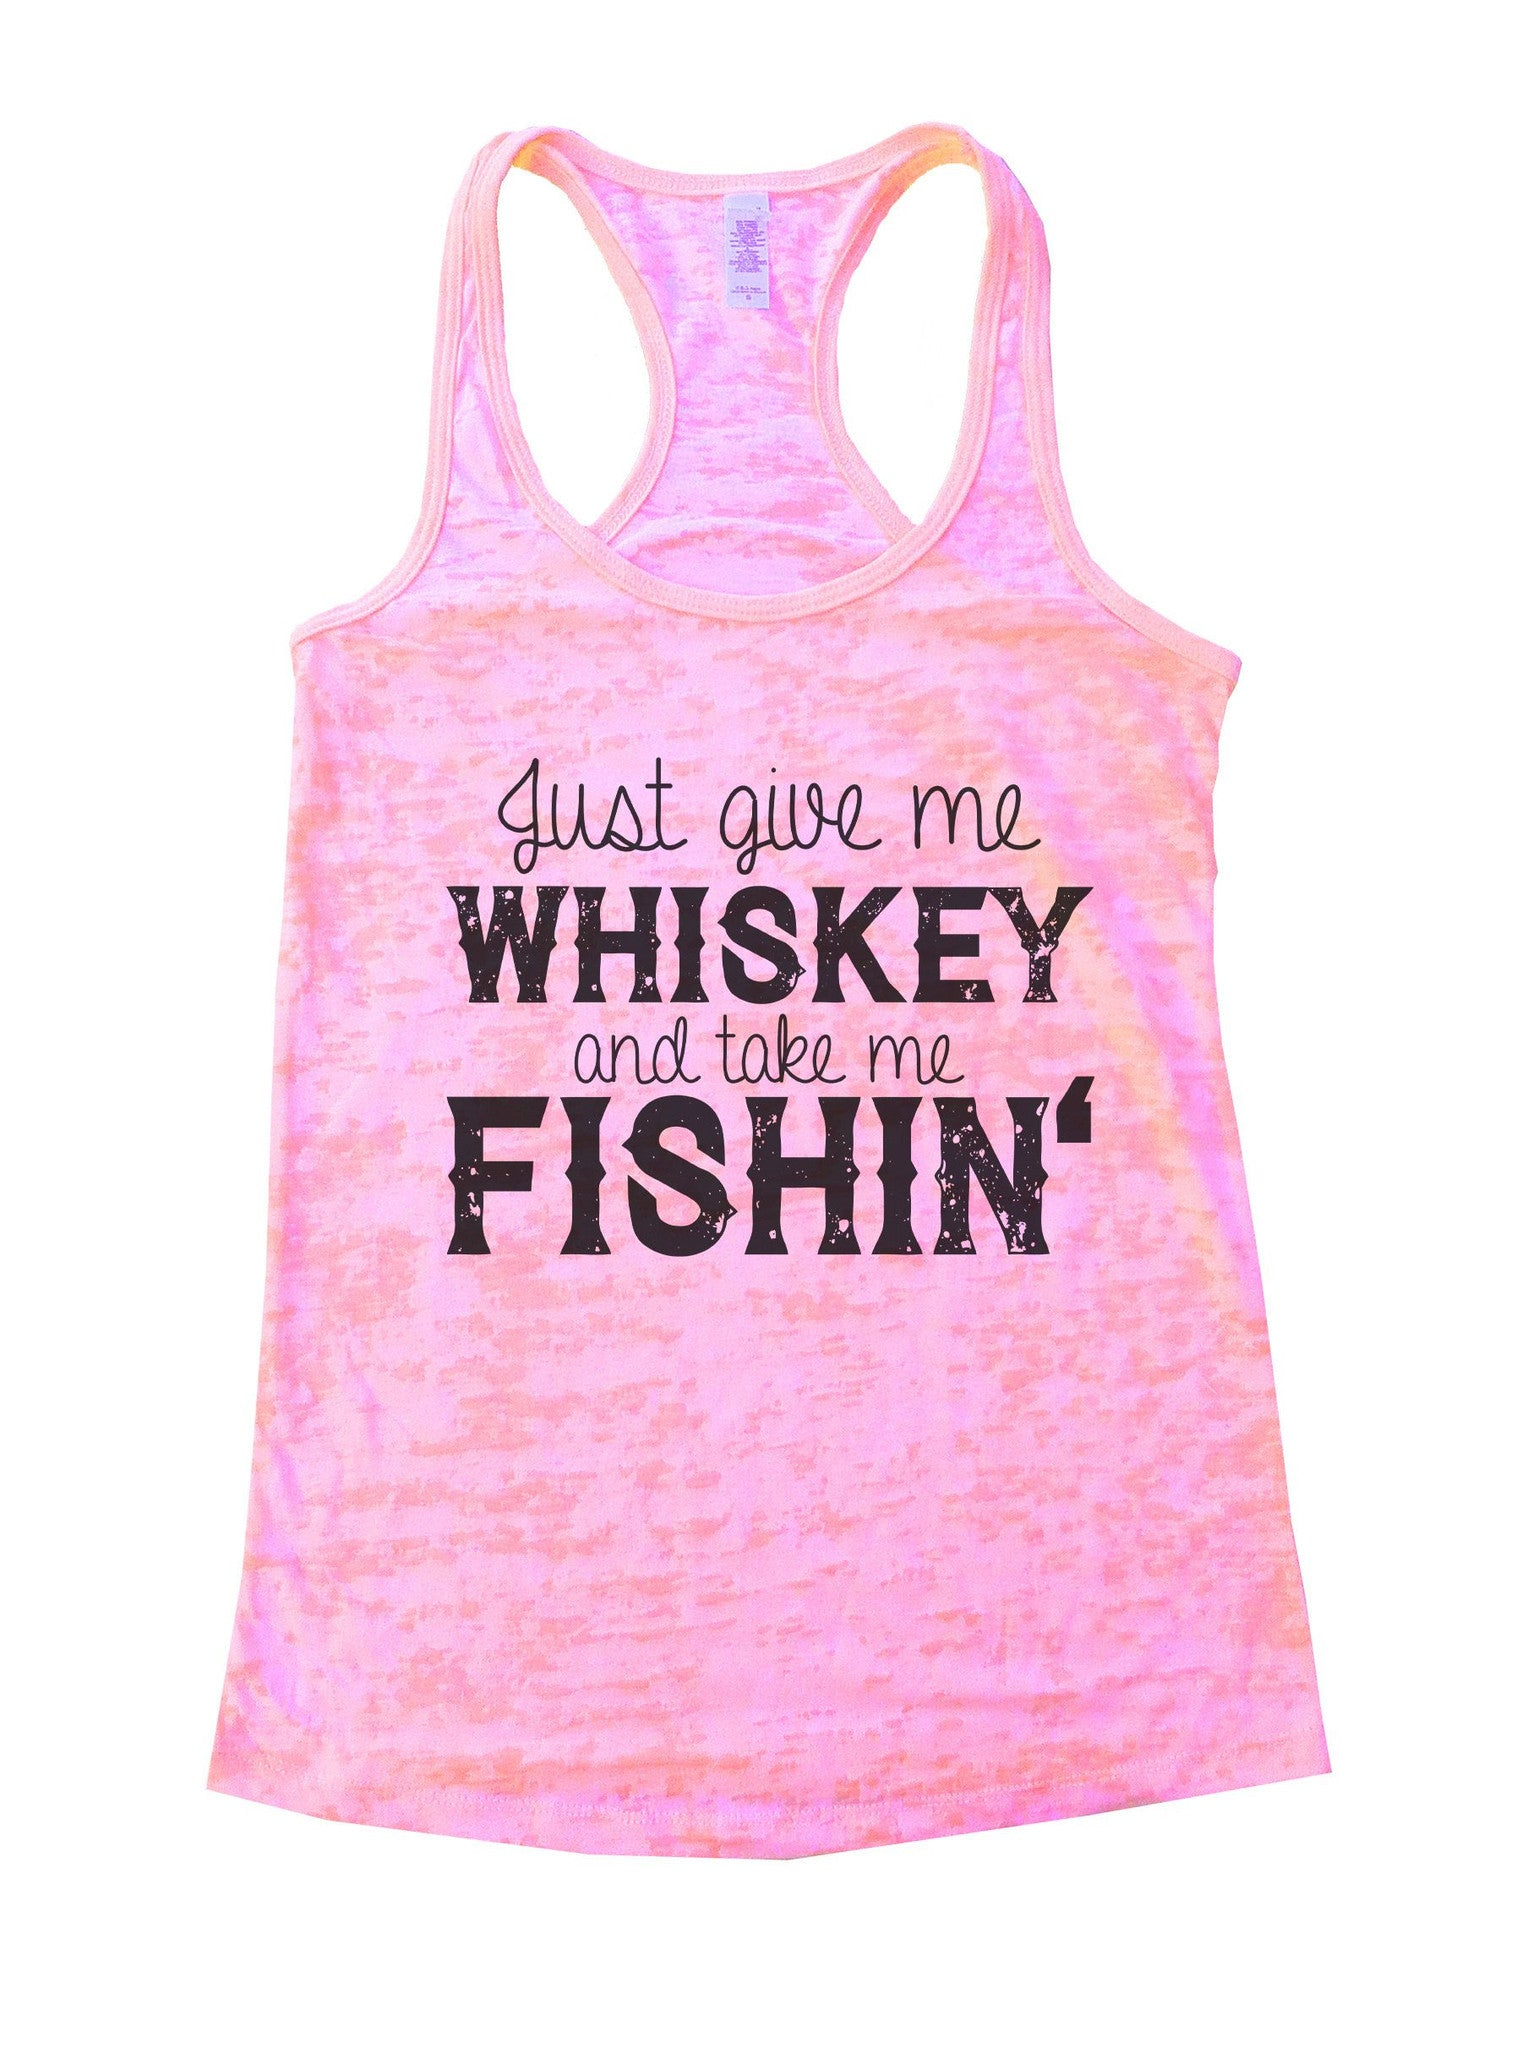 Just Give Me Whiskey And Take Me Fishin Burnout Tank Top By BurnoutTankTops.com - 1012 - Funny Shirts Tank Tops Burnouts and Triblends  - 2